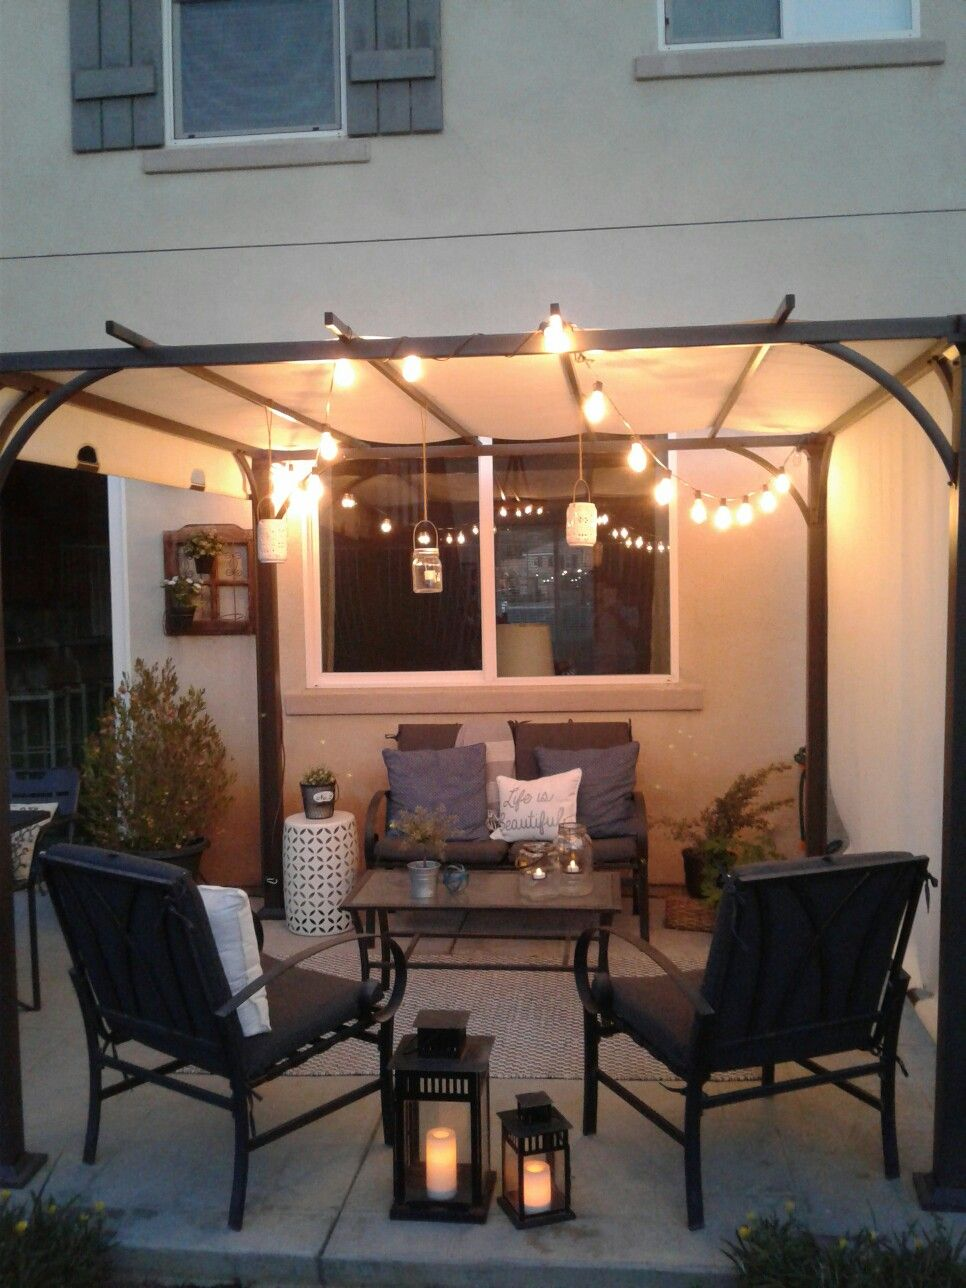 Threshold Pergola♡ / back porch/patio/ edison string lights. Lovely outdoors./home♡sweet♡home